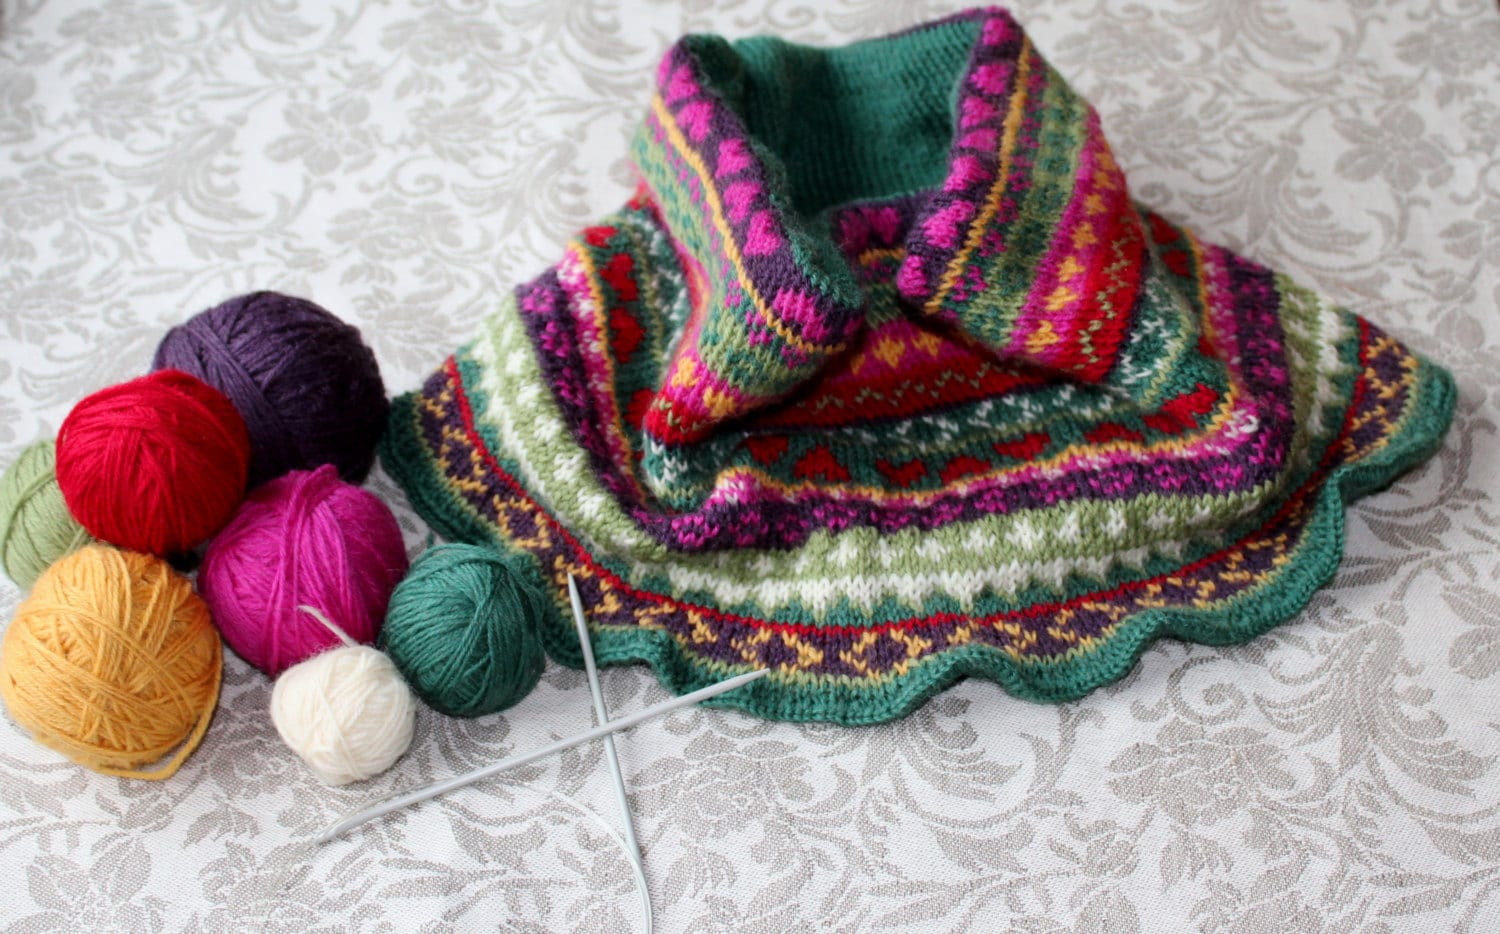 Colourful Knitting Patterns : Colorful Fair Isle style cowl knitting pattern. Instant